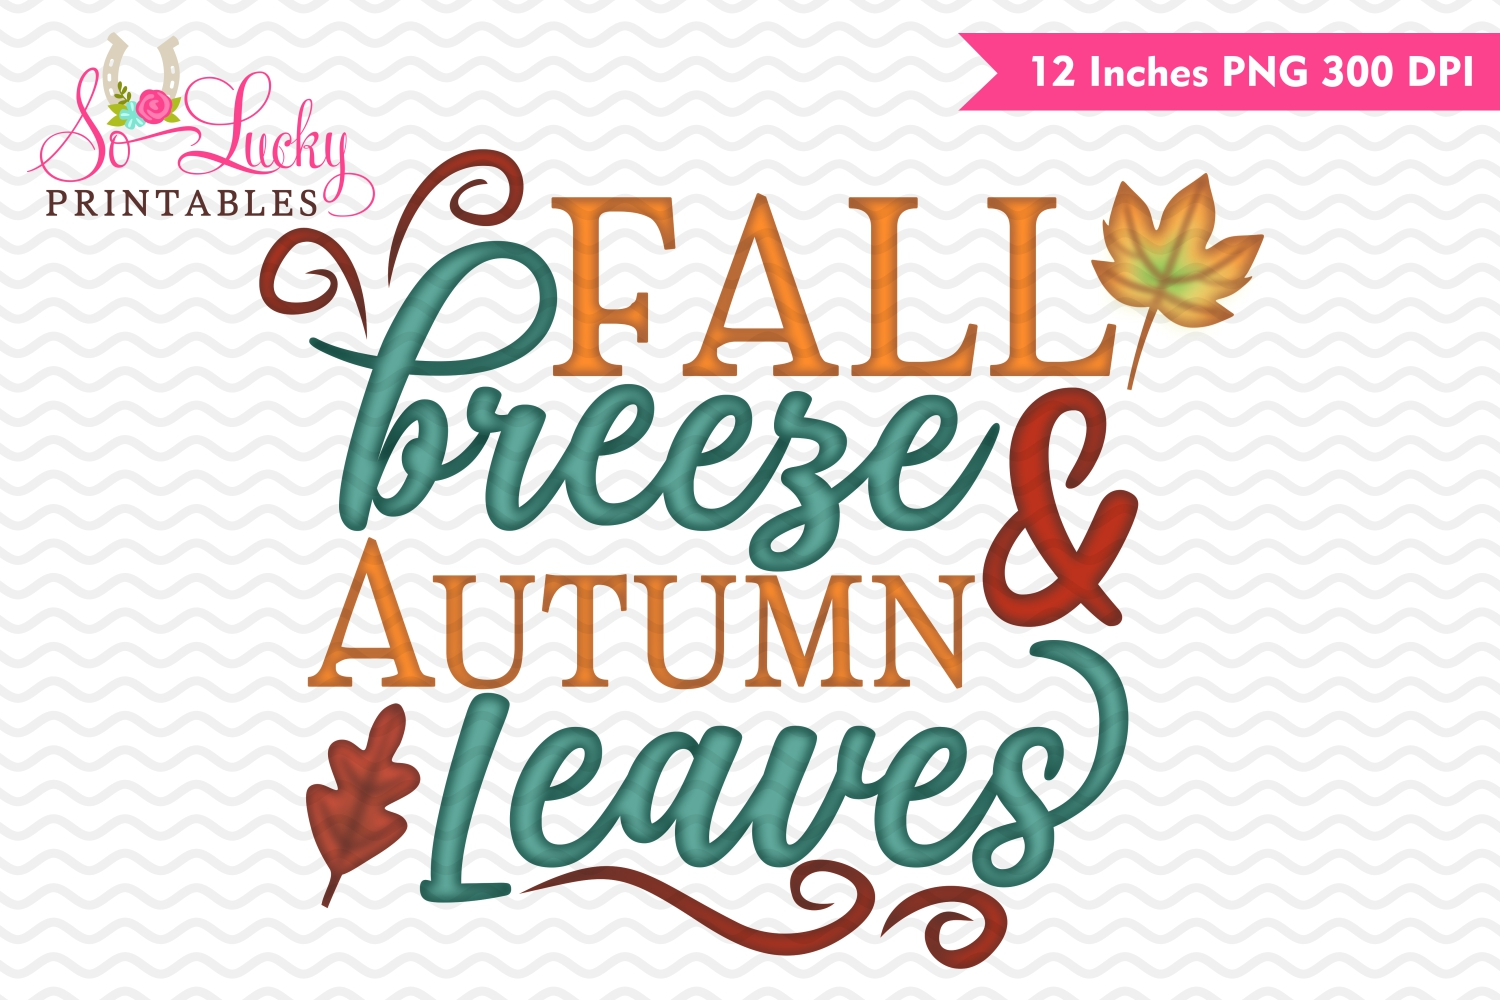 Fall breeze and autumn leaves watercolor printable sublimati example image 1